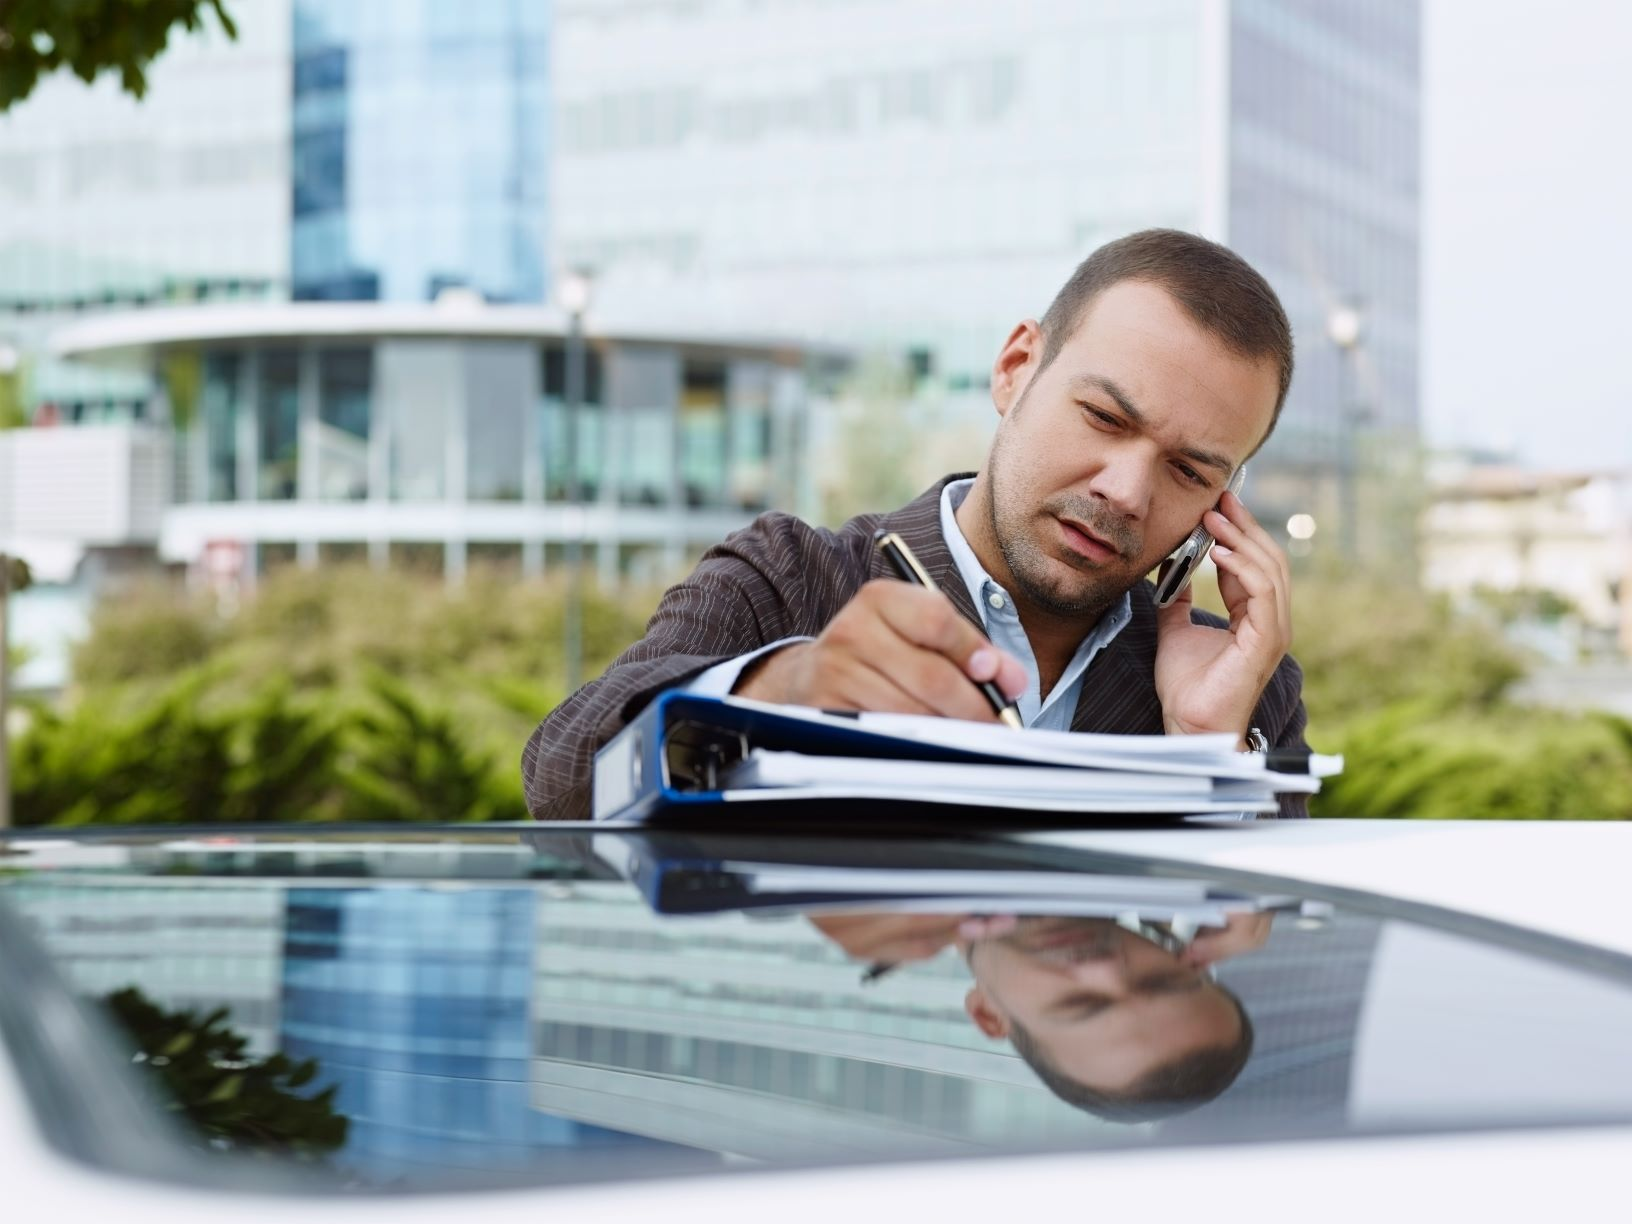 man doing paperwork outside on top of his car